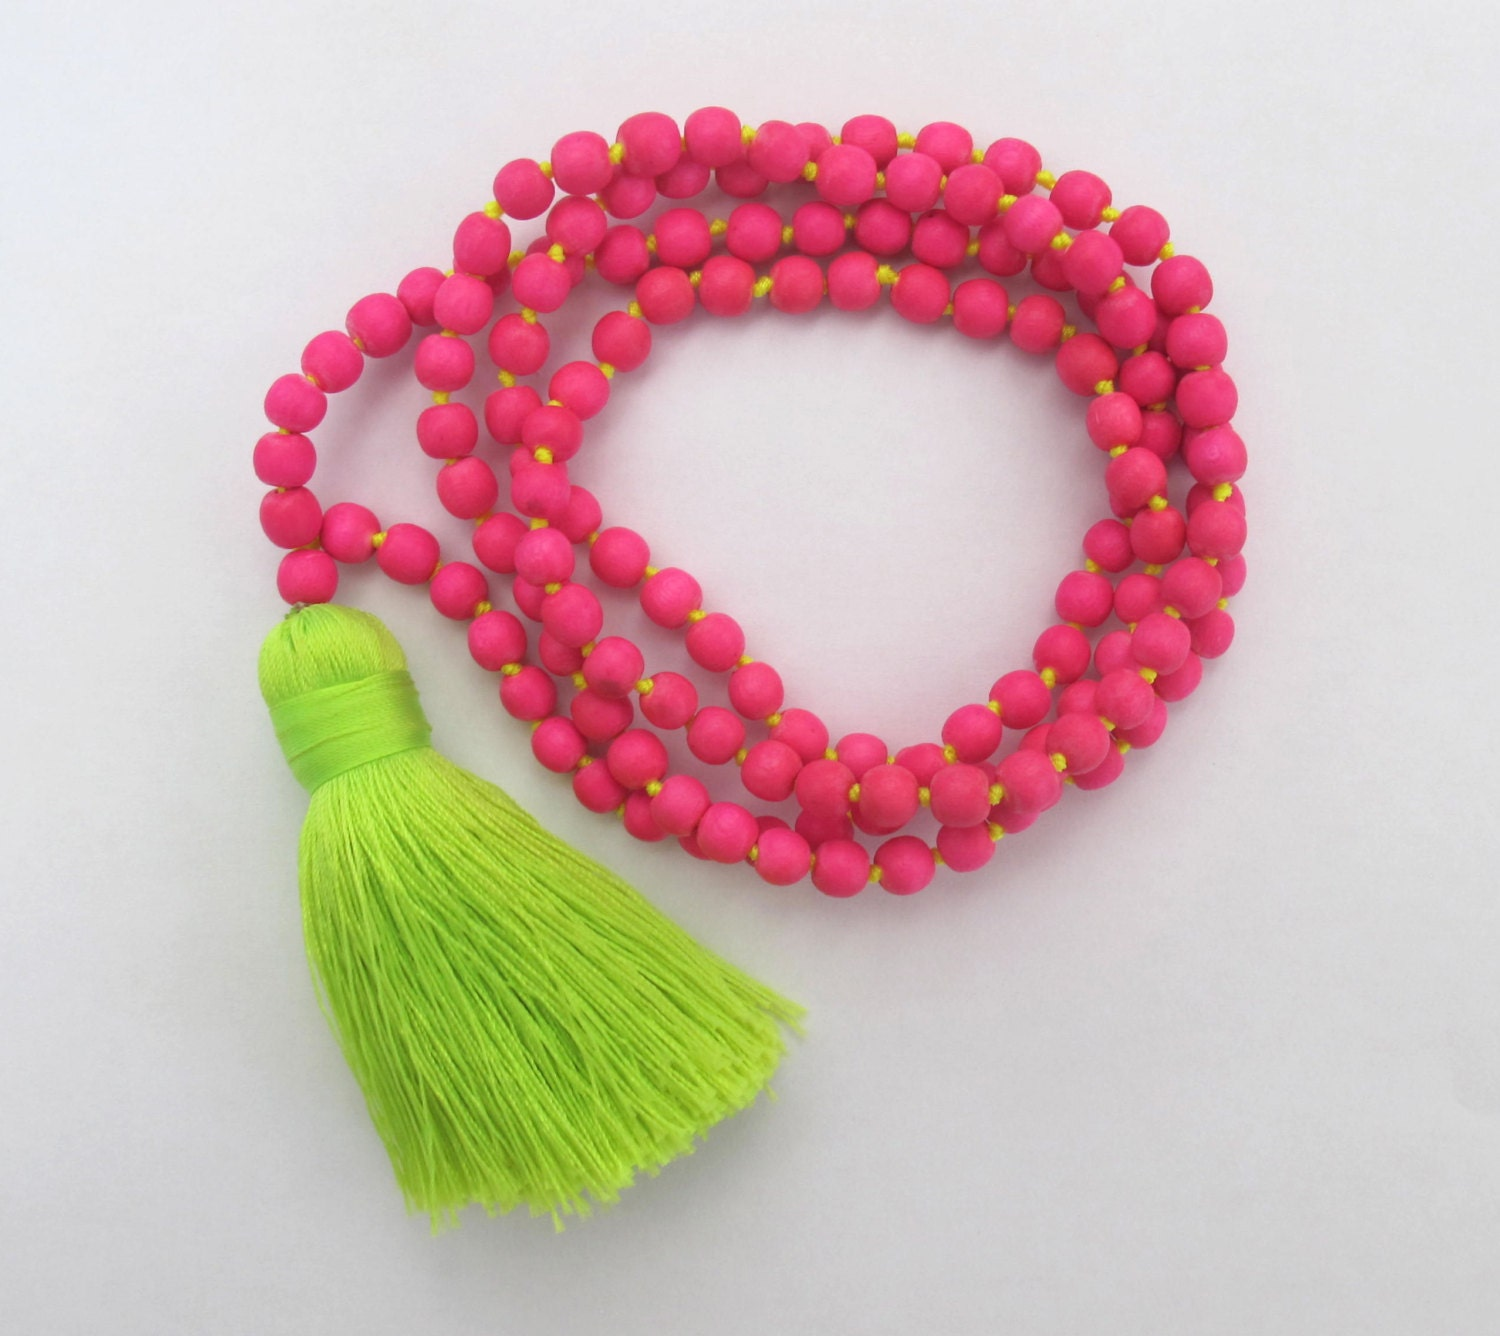 hot pink beaded tassel necklace chunky lime green tassel. Black Bedroom Furniture Sets. Home Design Ideas